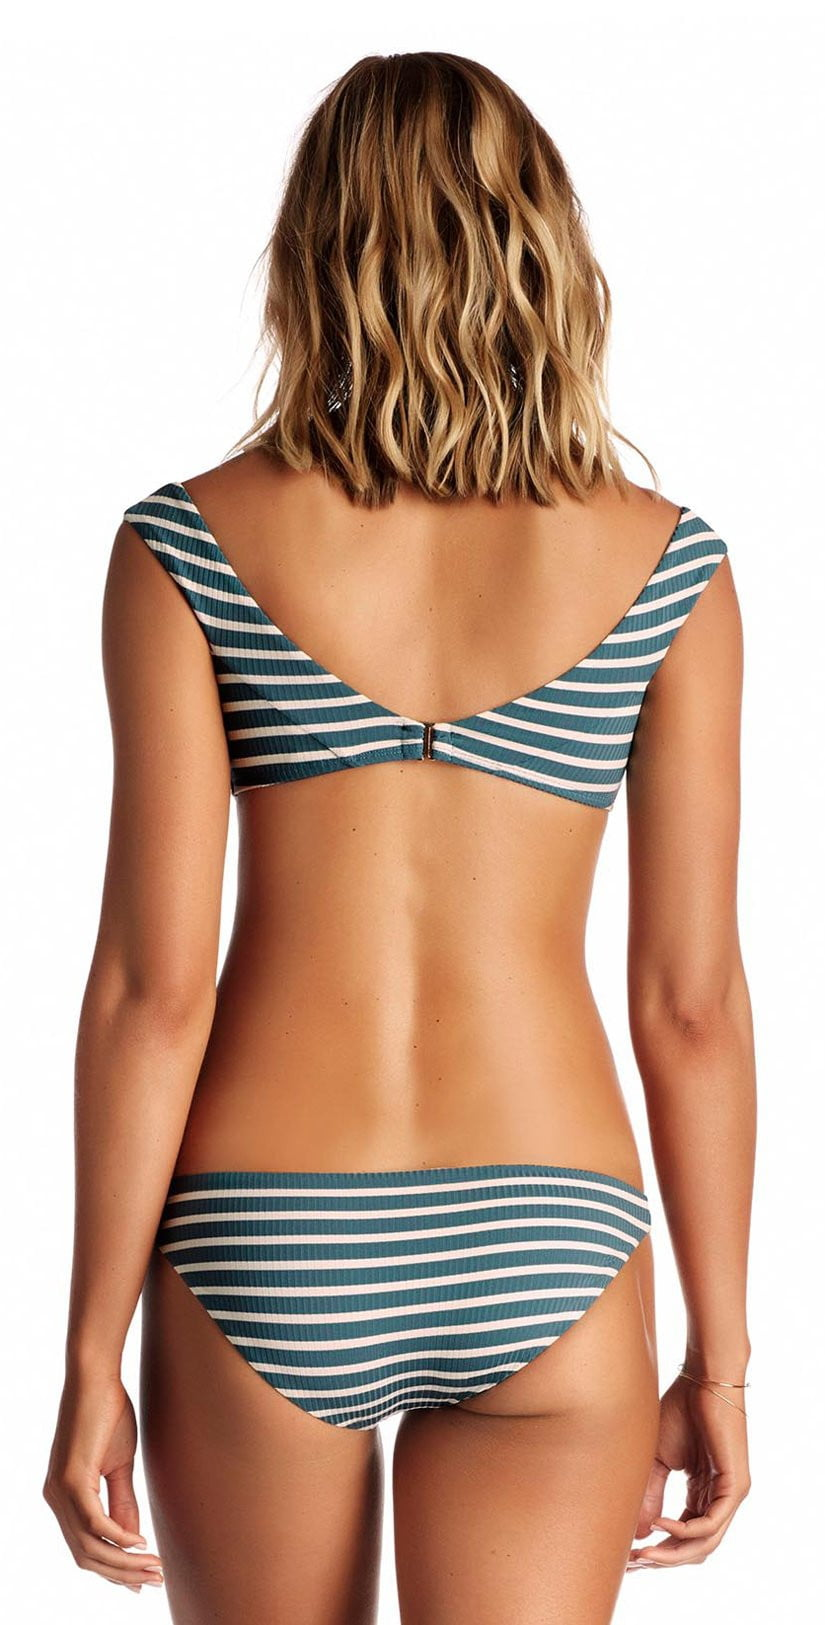 Vitamin A Capri Bikini Top in Grey Marin Stripe 88T MAG: